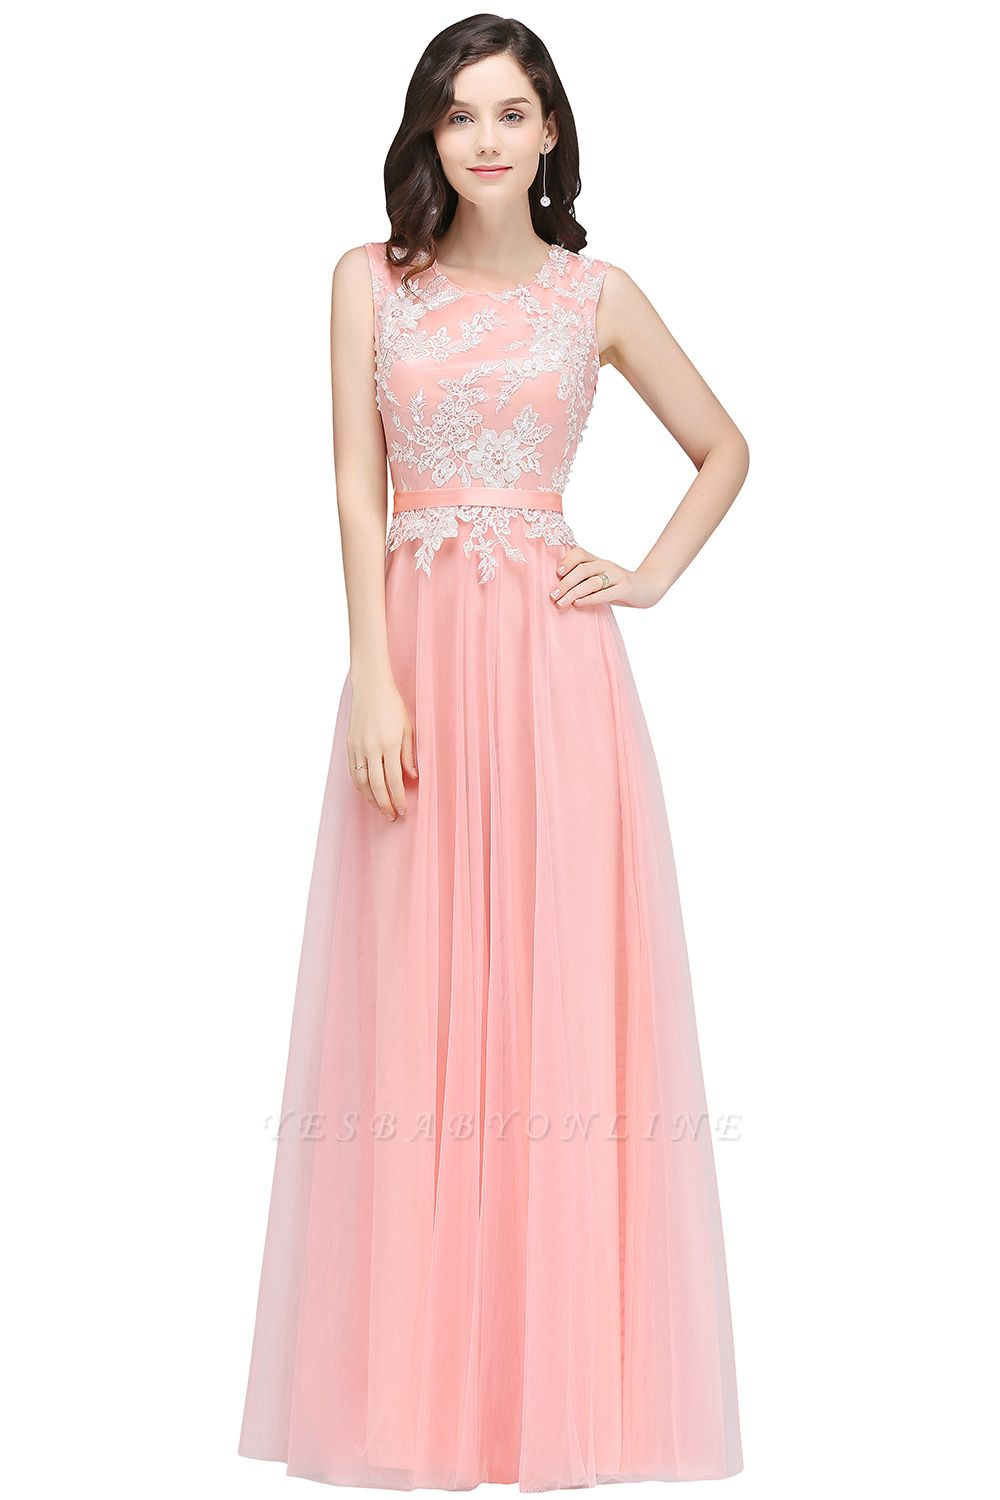 Pink A-line Prom Dress with Lace Appliques In Stock